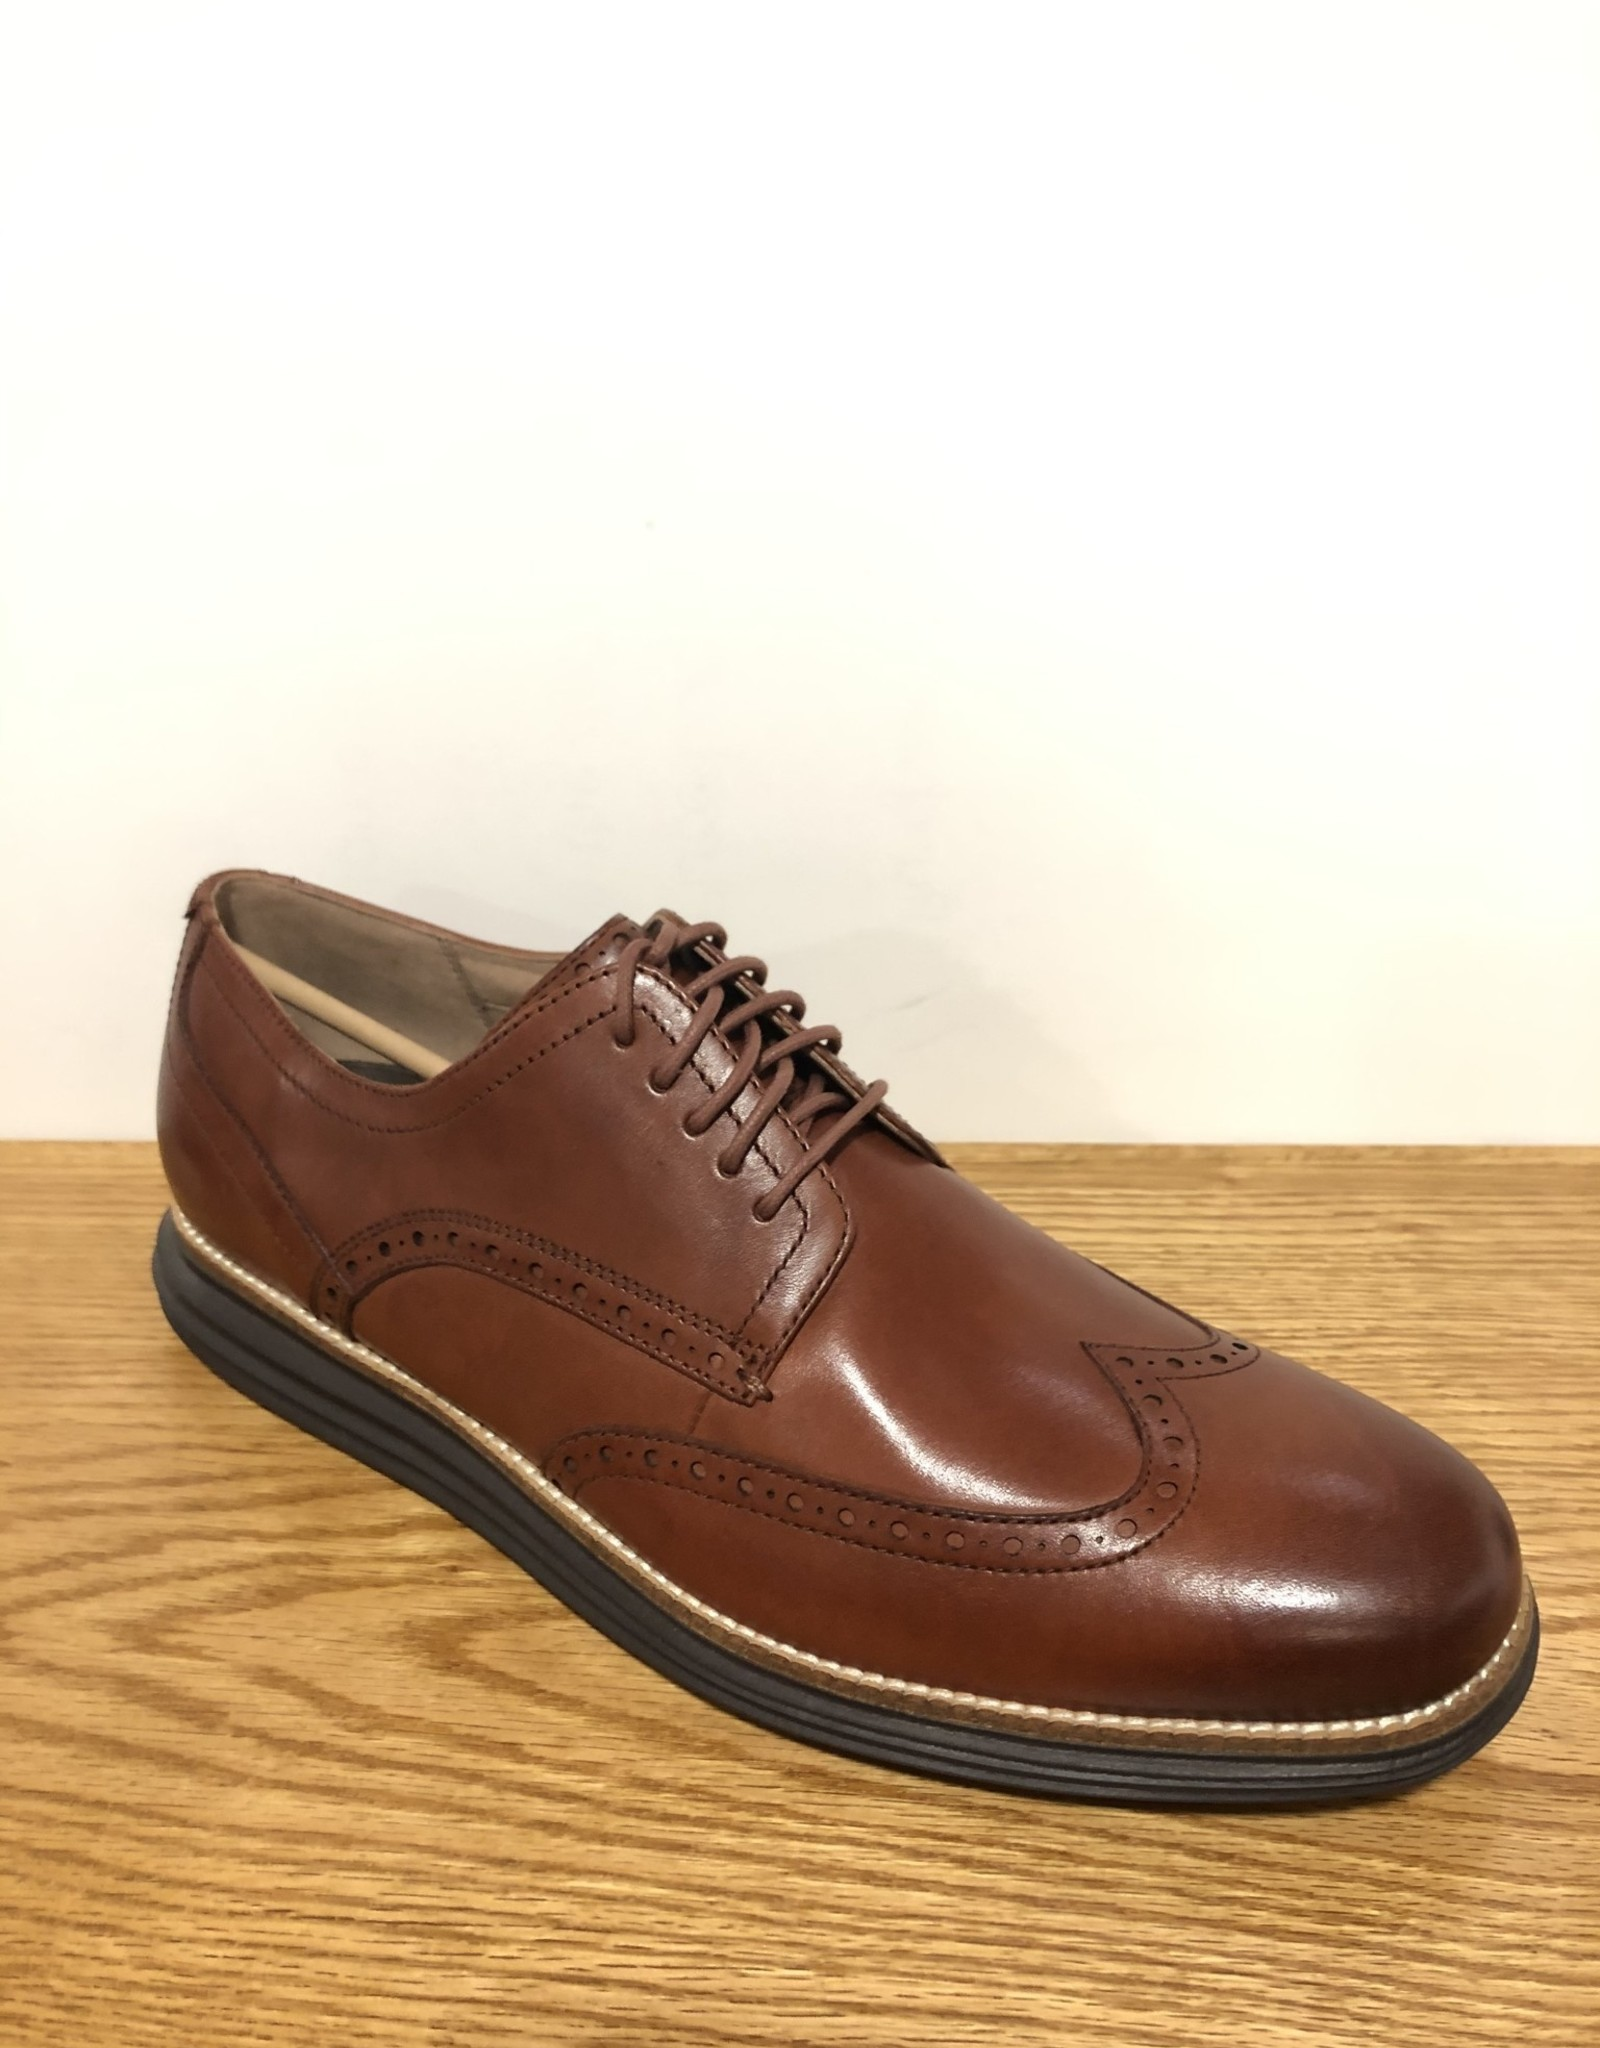 C26472 Woodbury Grand Shortwing Cole Haan